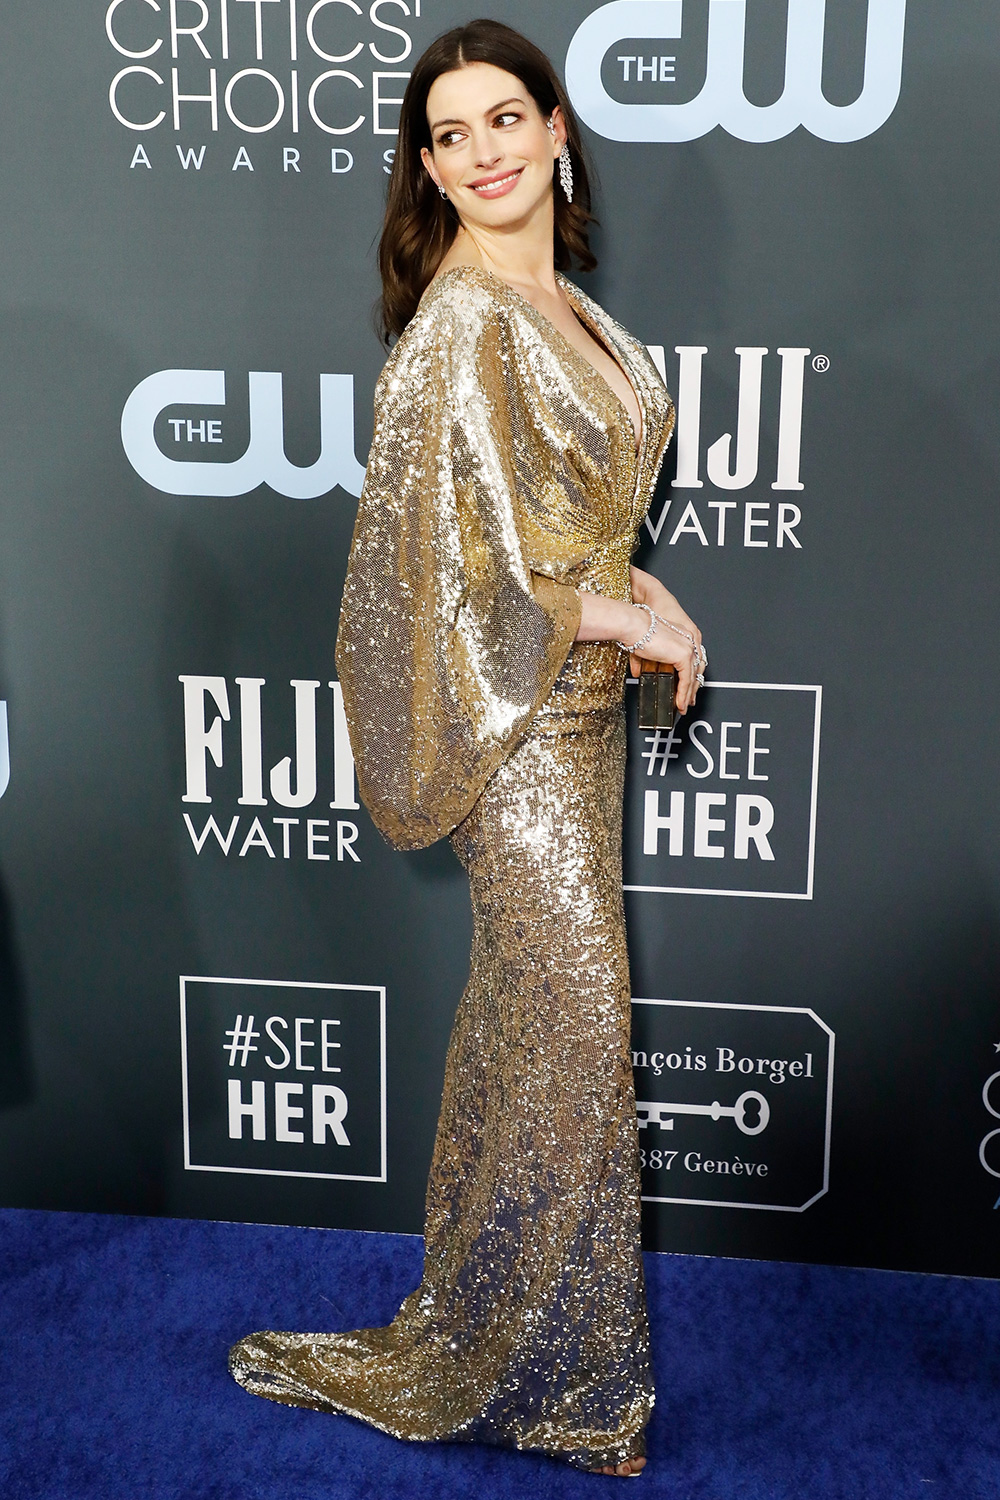 Anne Hathaway attends the 25th Annual Critics' Choice Awards at Barker Hangar on January 12, 2020 in Santa Monica, California